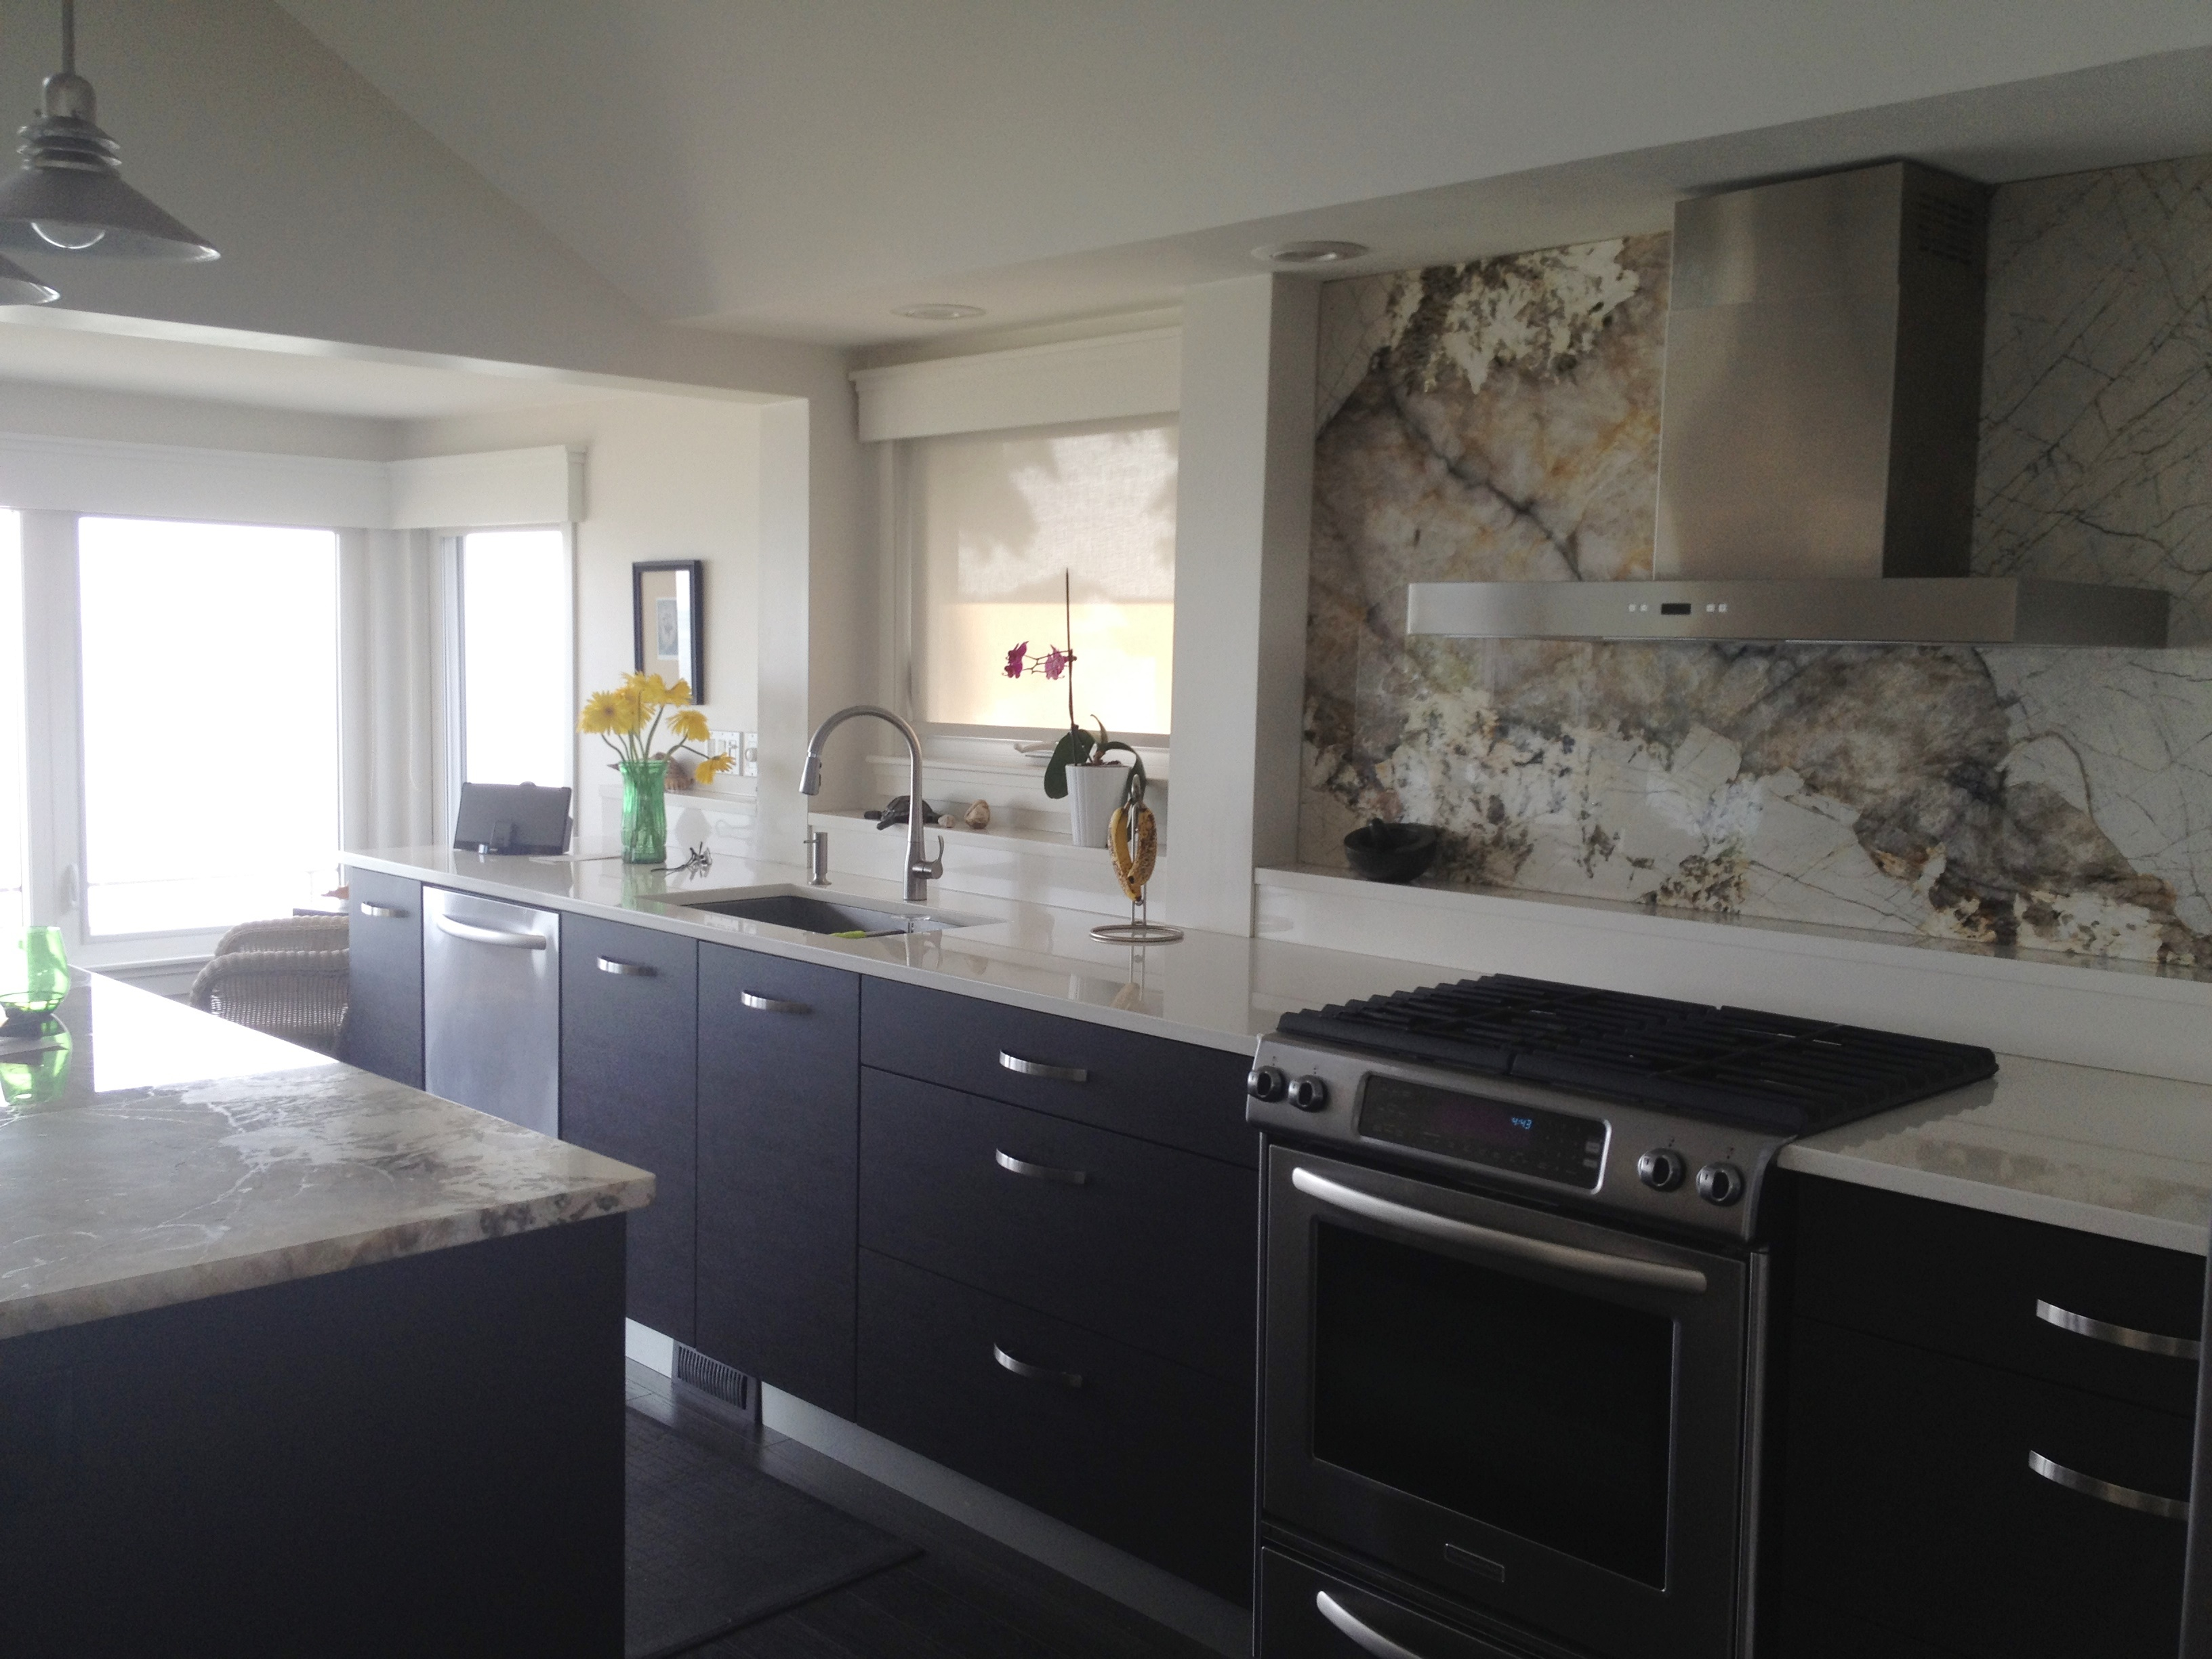 Silver Creek Custom Cabinetry - Part 2